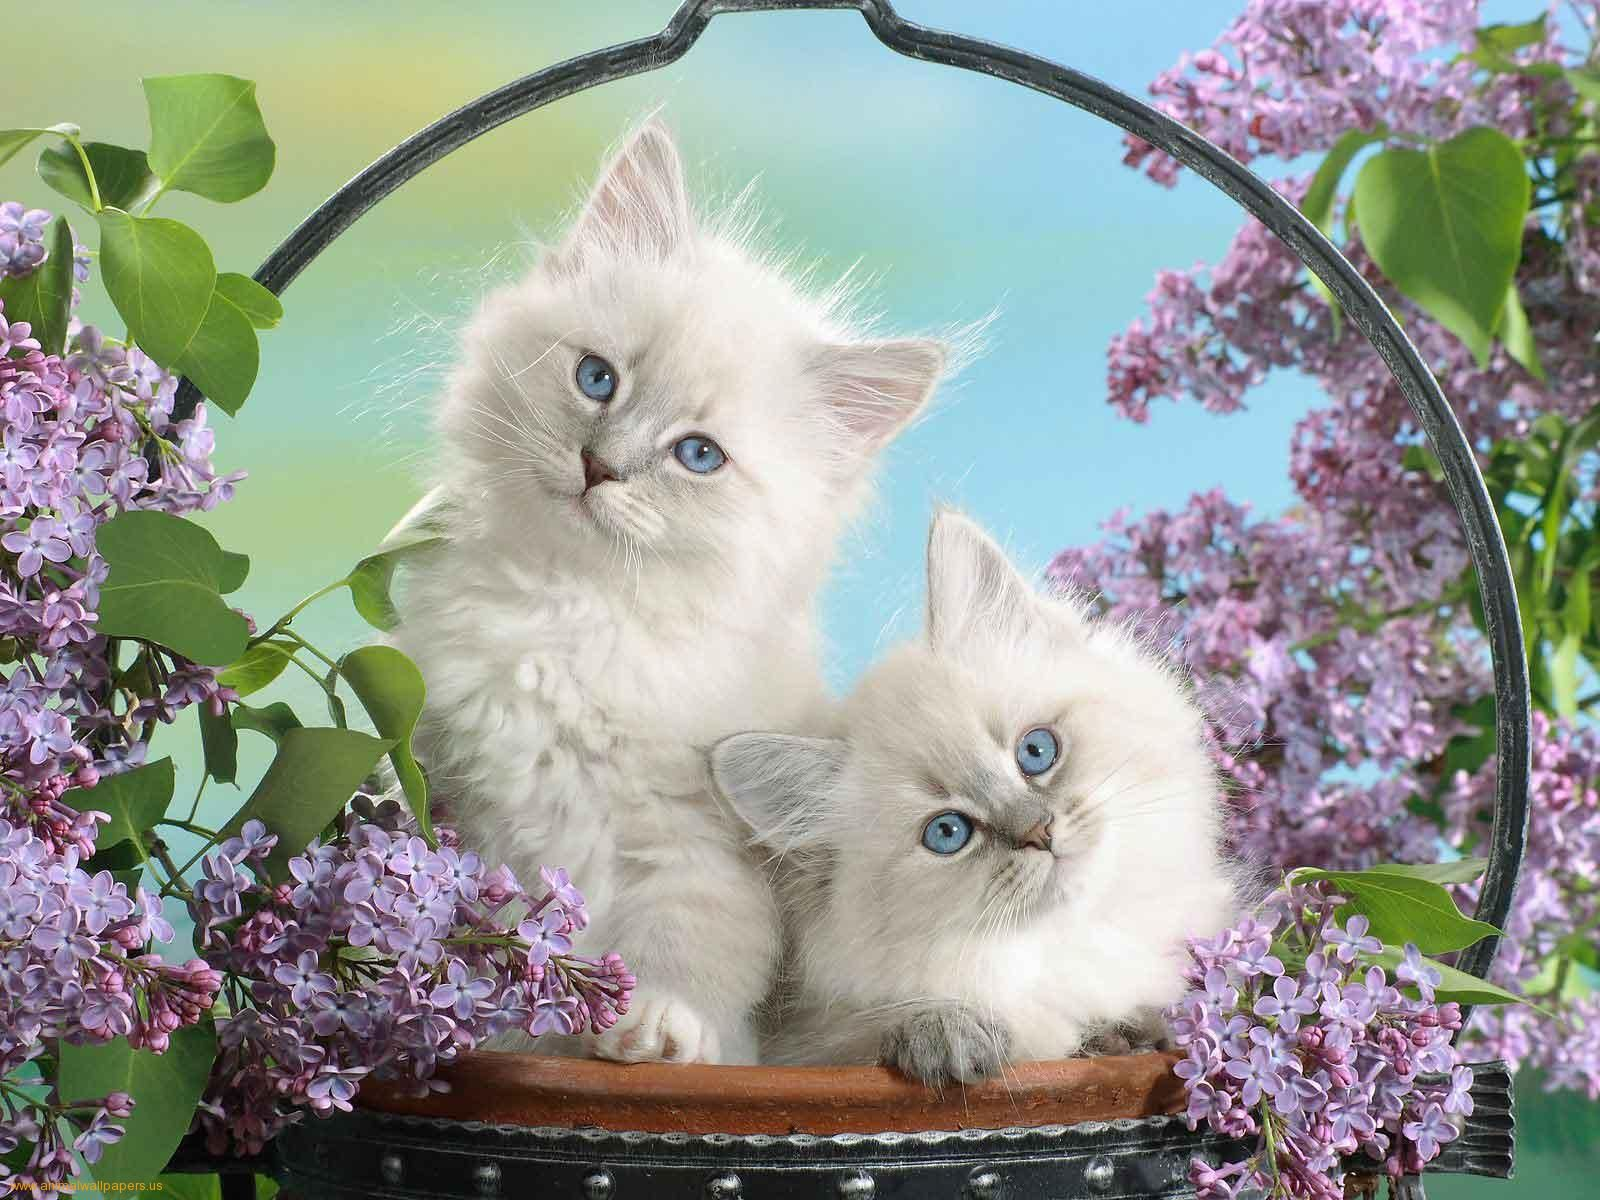 Puppies Kittens Two In A Basket Of Flowers Wallpaper With